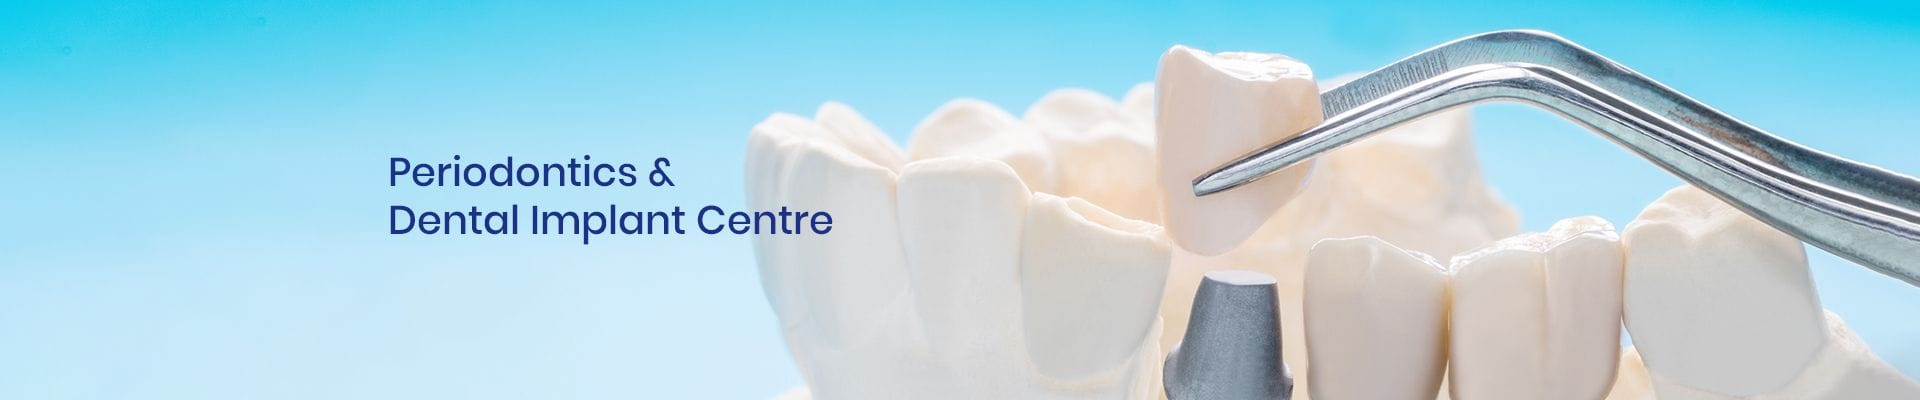 Our Team | Periodontics & Dental Implant Centre | QLD